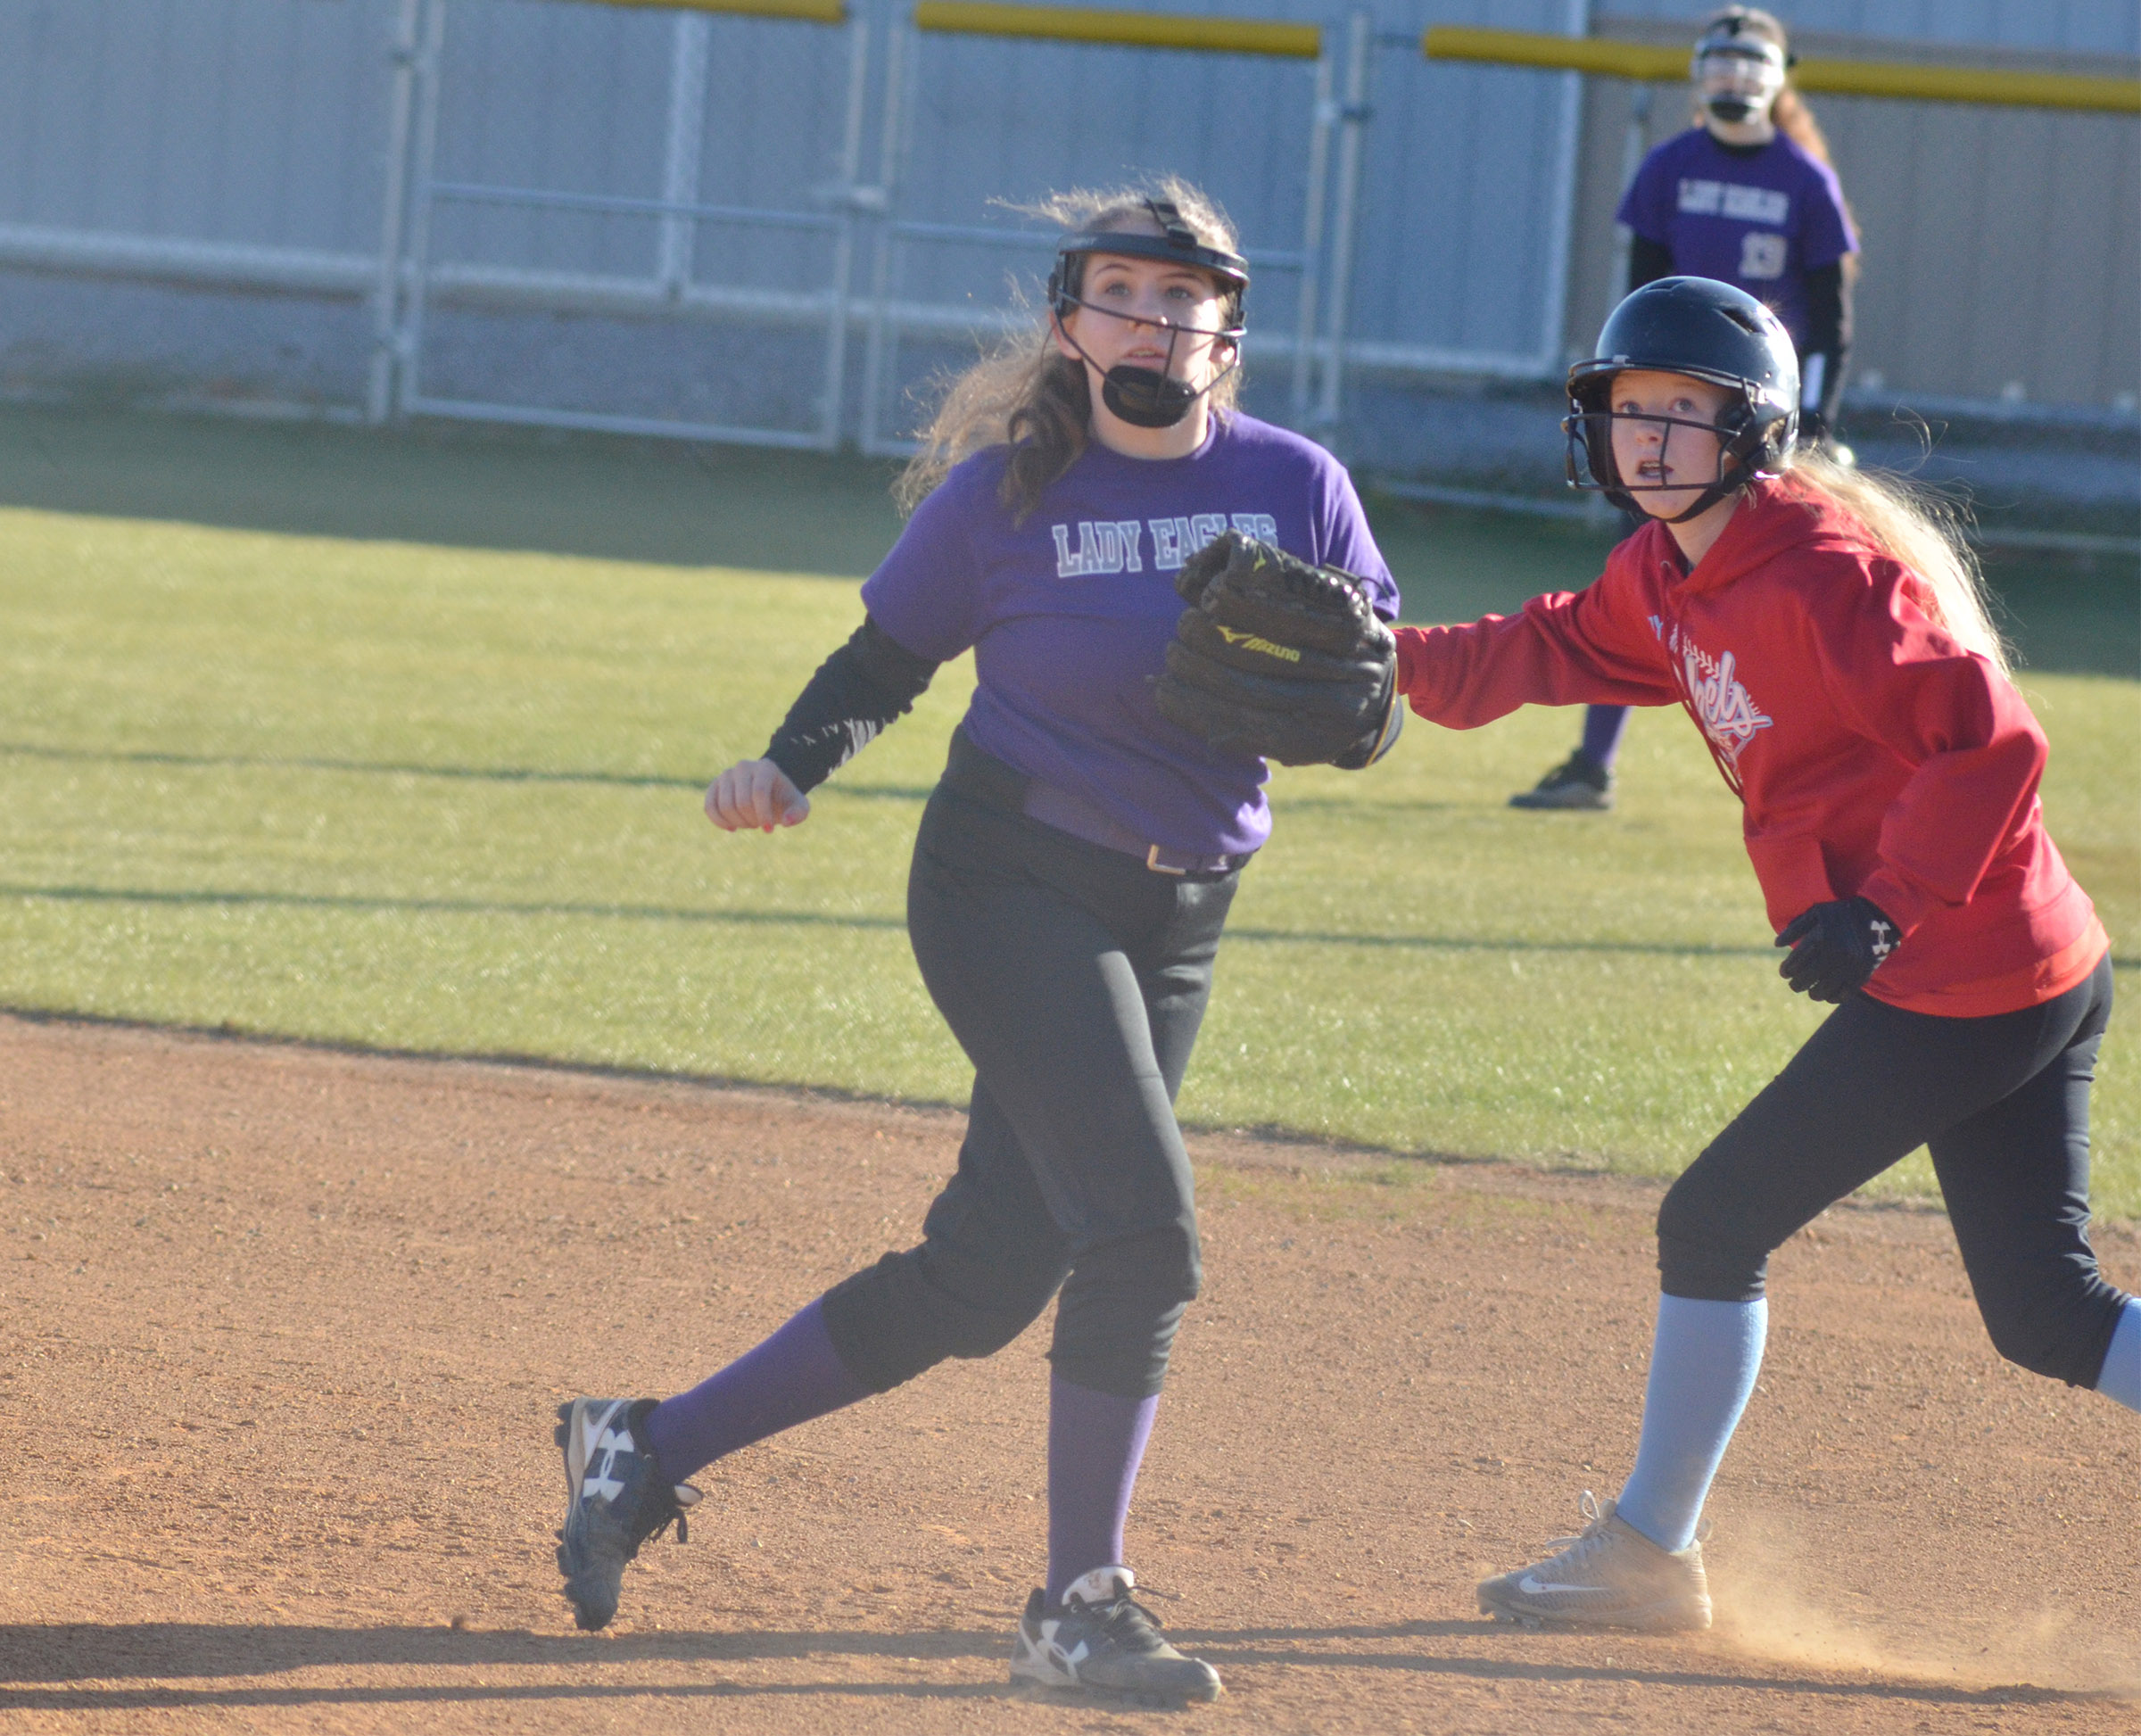 CMS eighth-grader Kaylee Reynolds holds the runner on first.